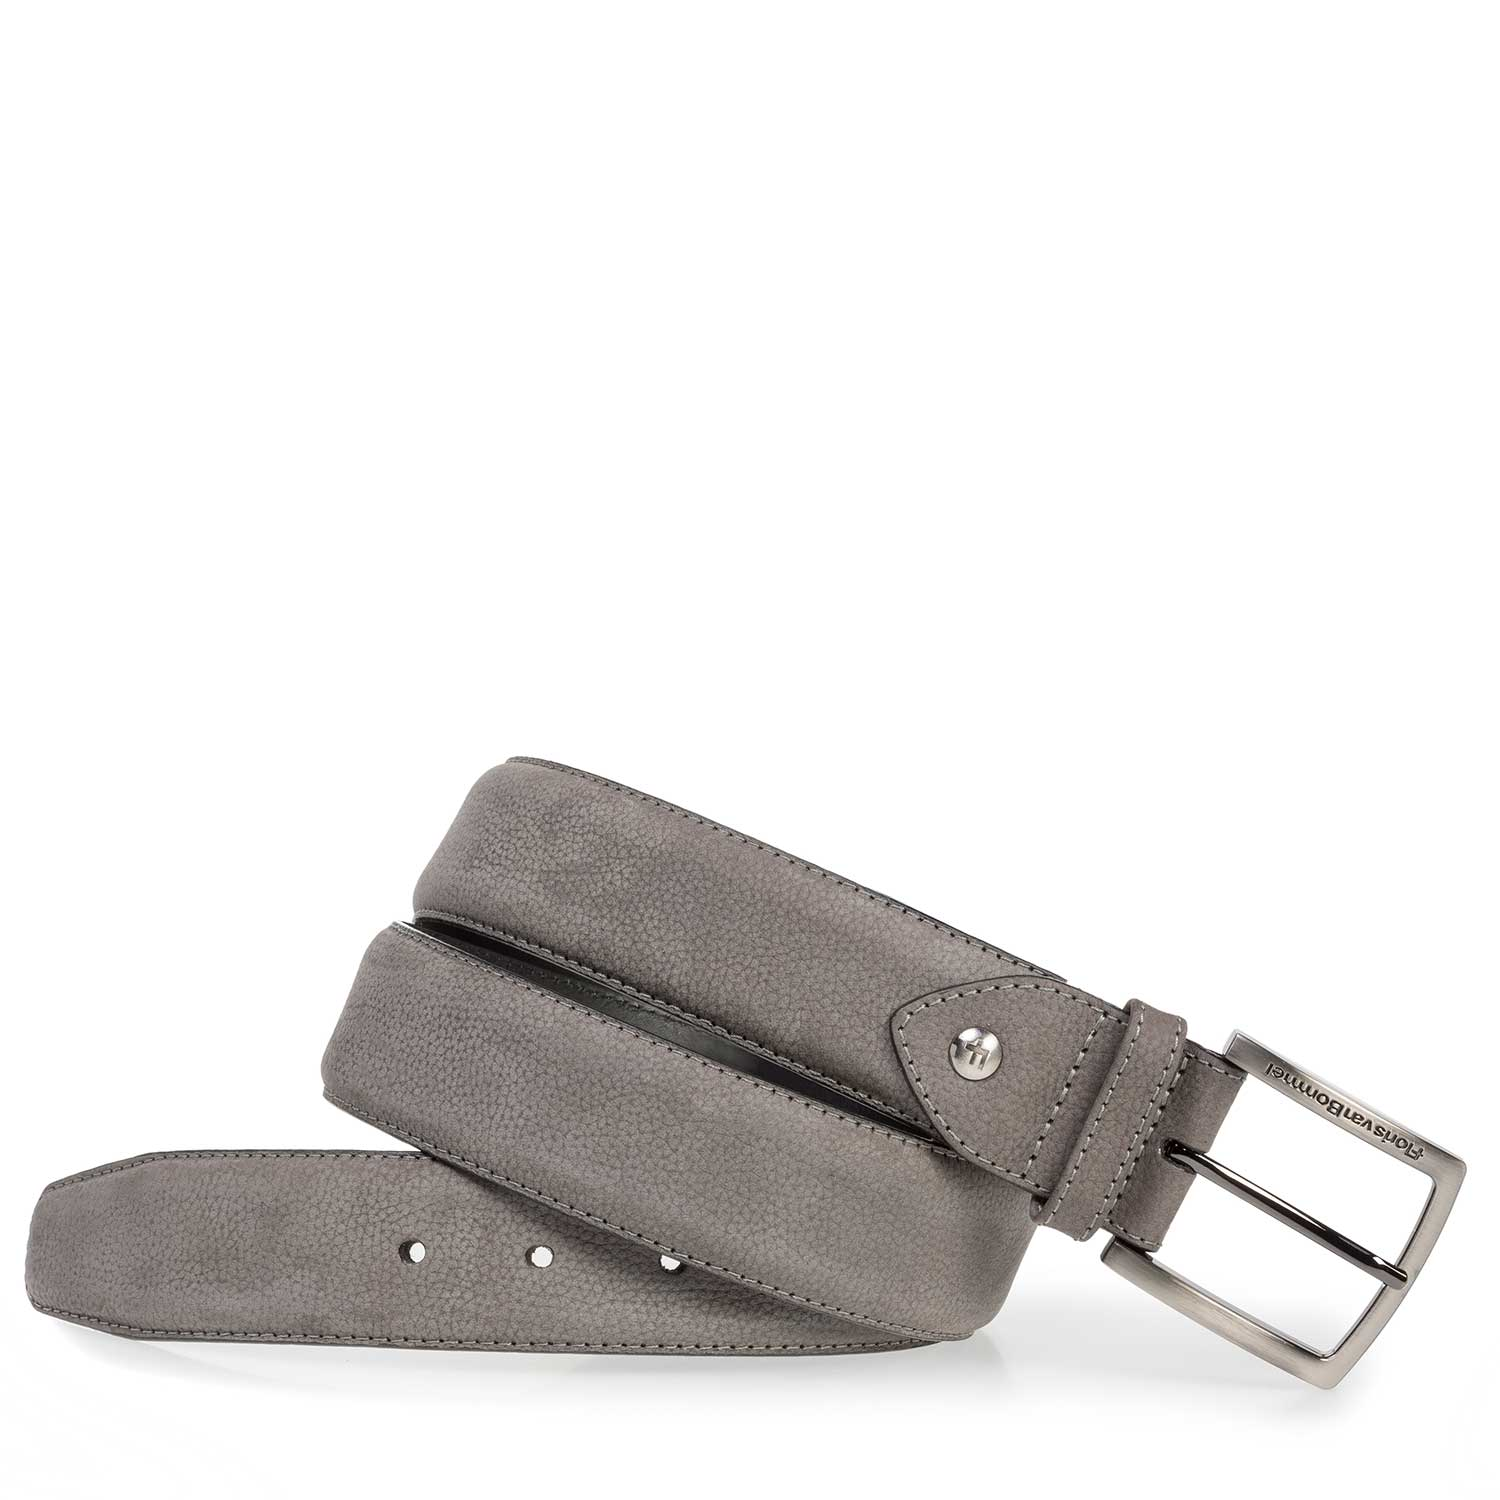 75202/33 - Dark grey nubuck leather belt with structure